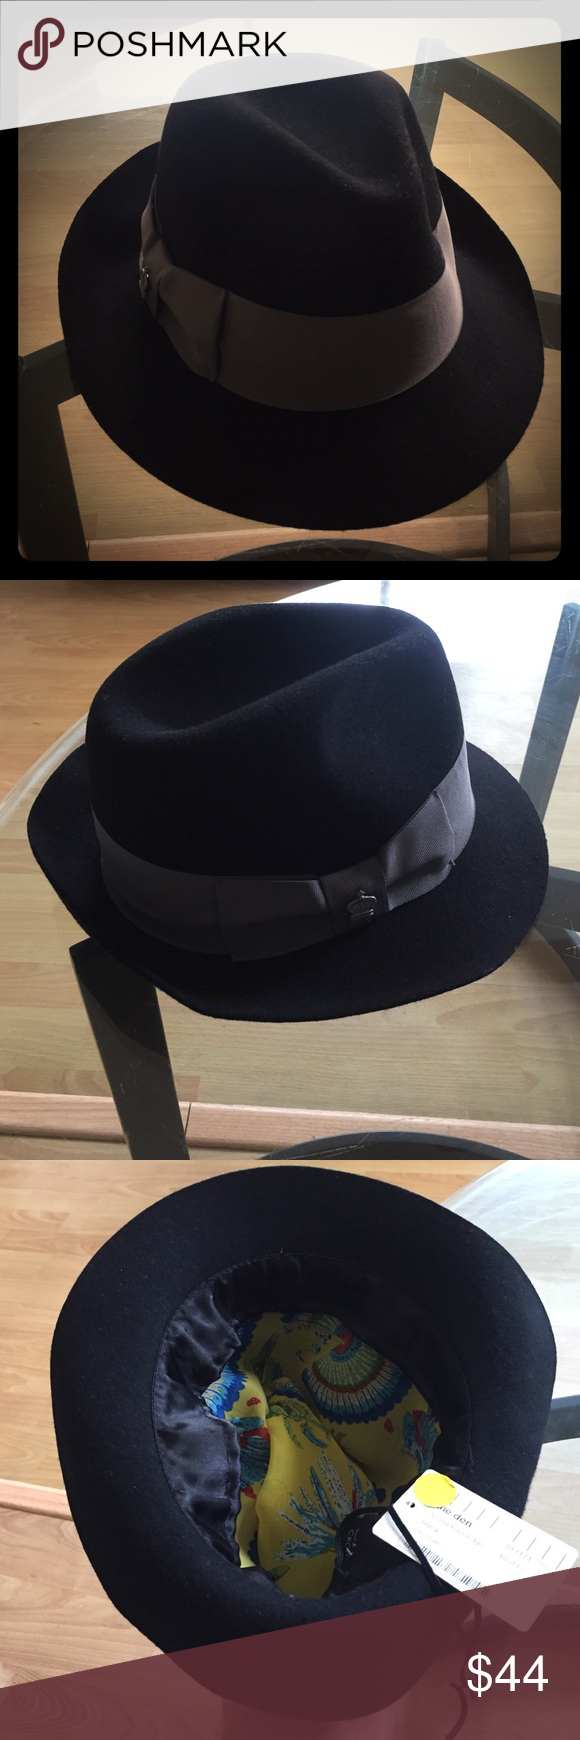 bc44c085509ca Christy s Crown Collection Women s Fedora Adjustable to any head size.  Excellent quality black suede exterior